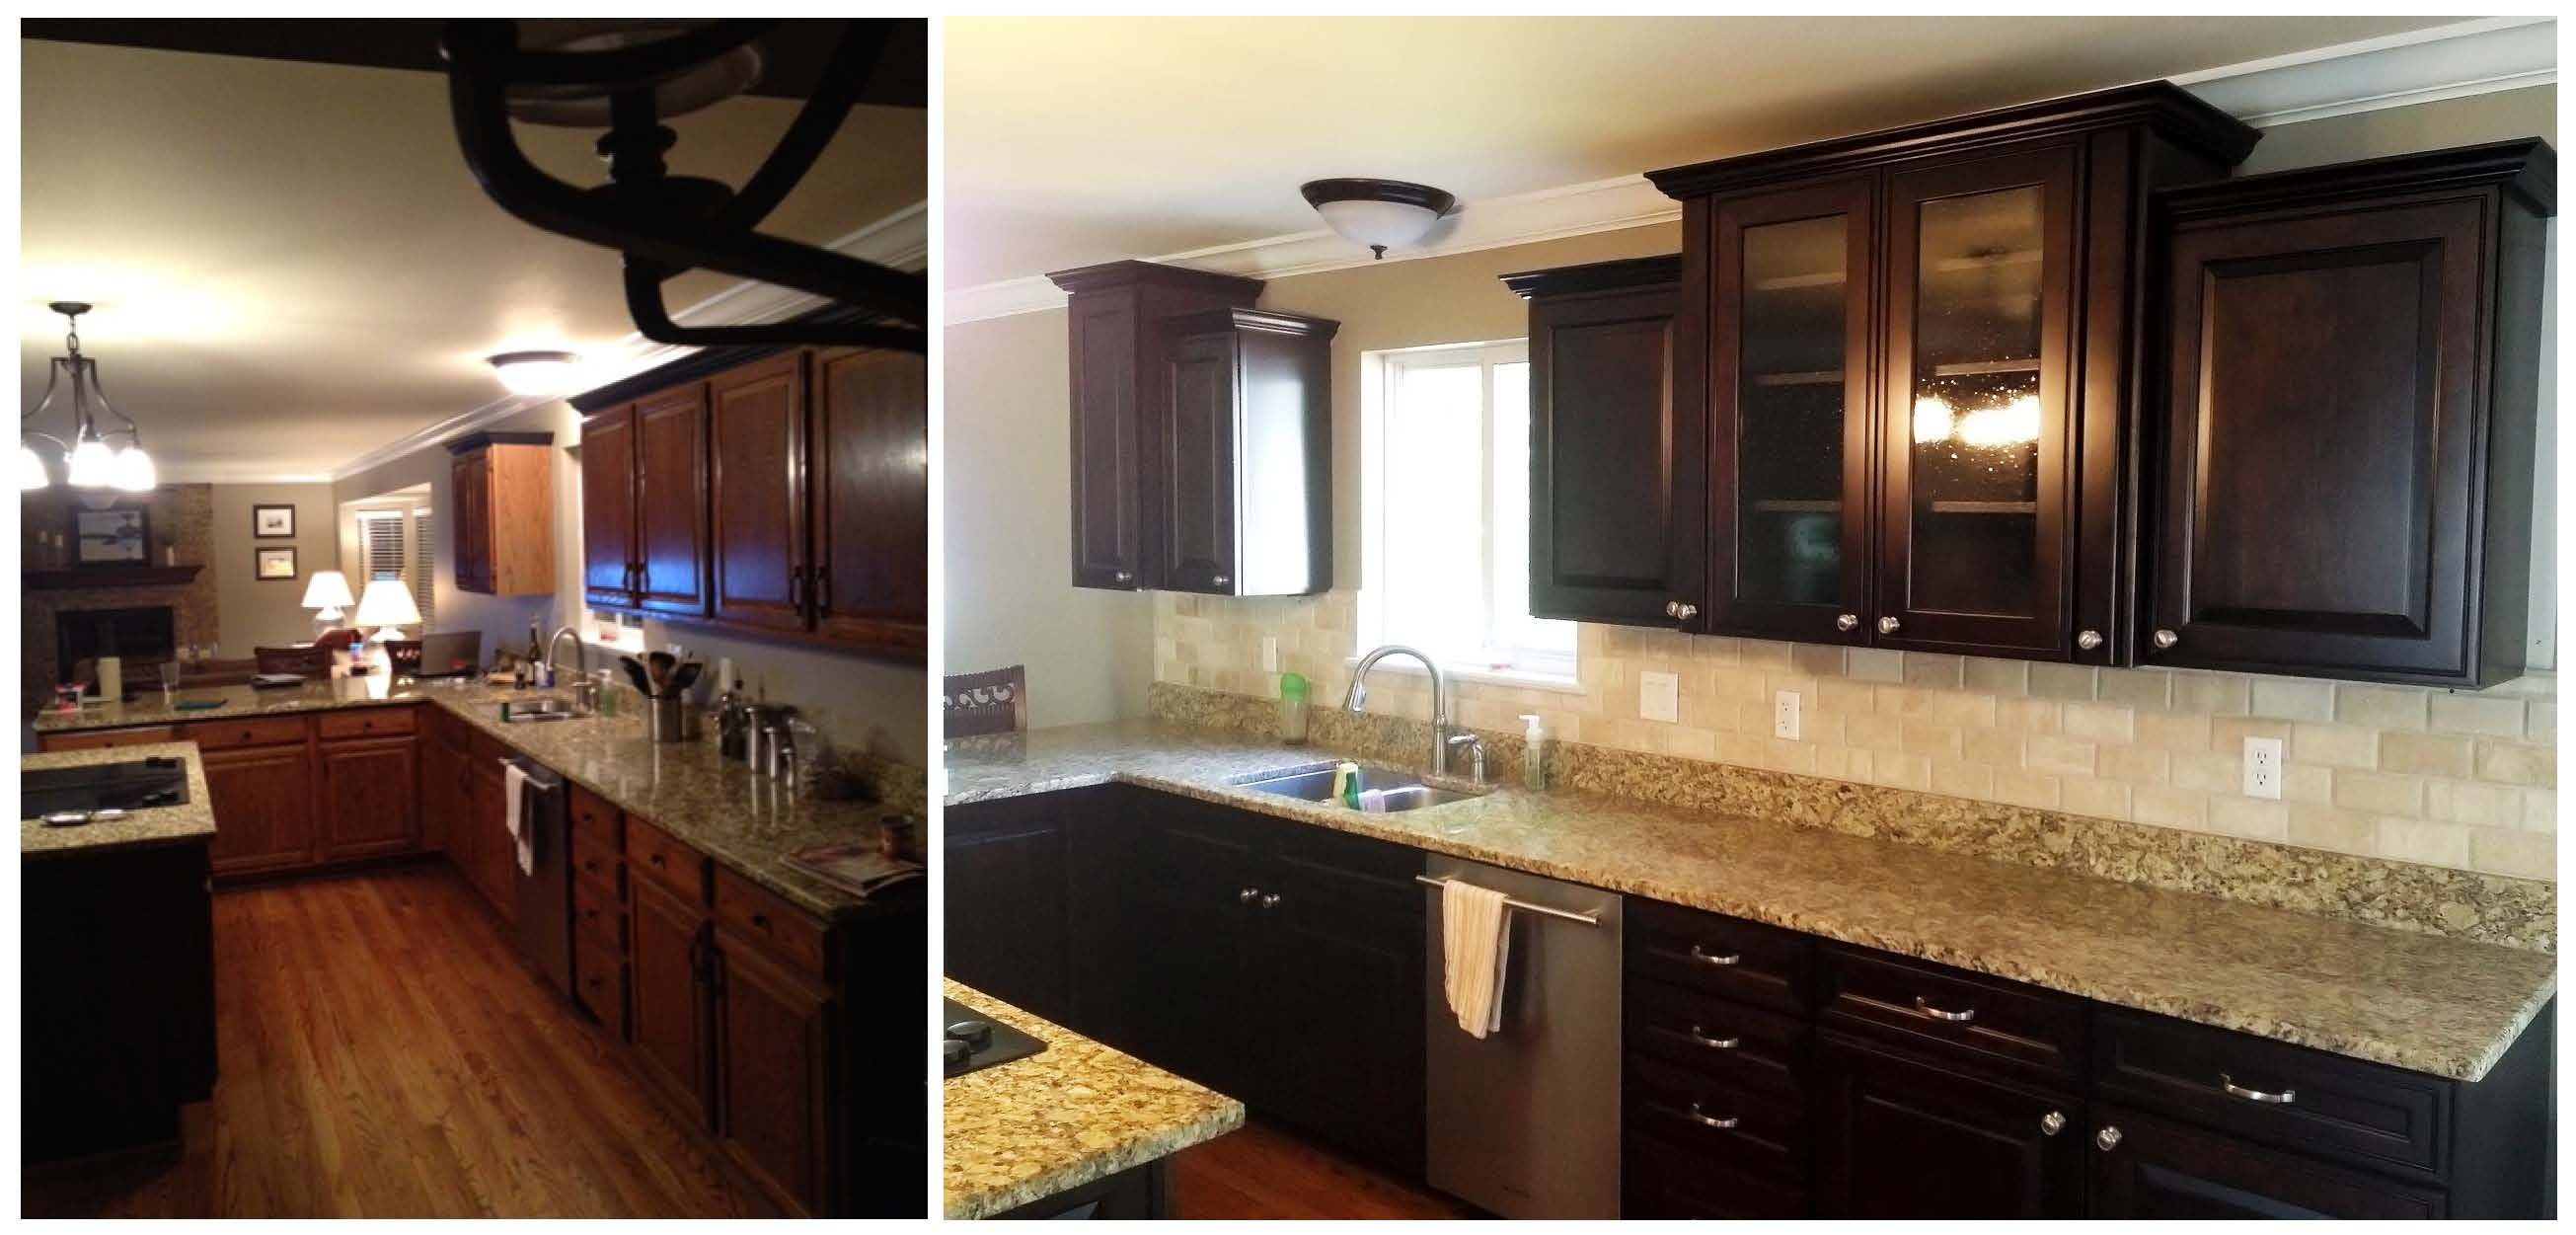 What a difference new cabinets and a backsplash will make ...